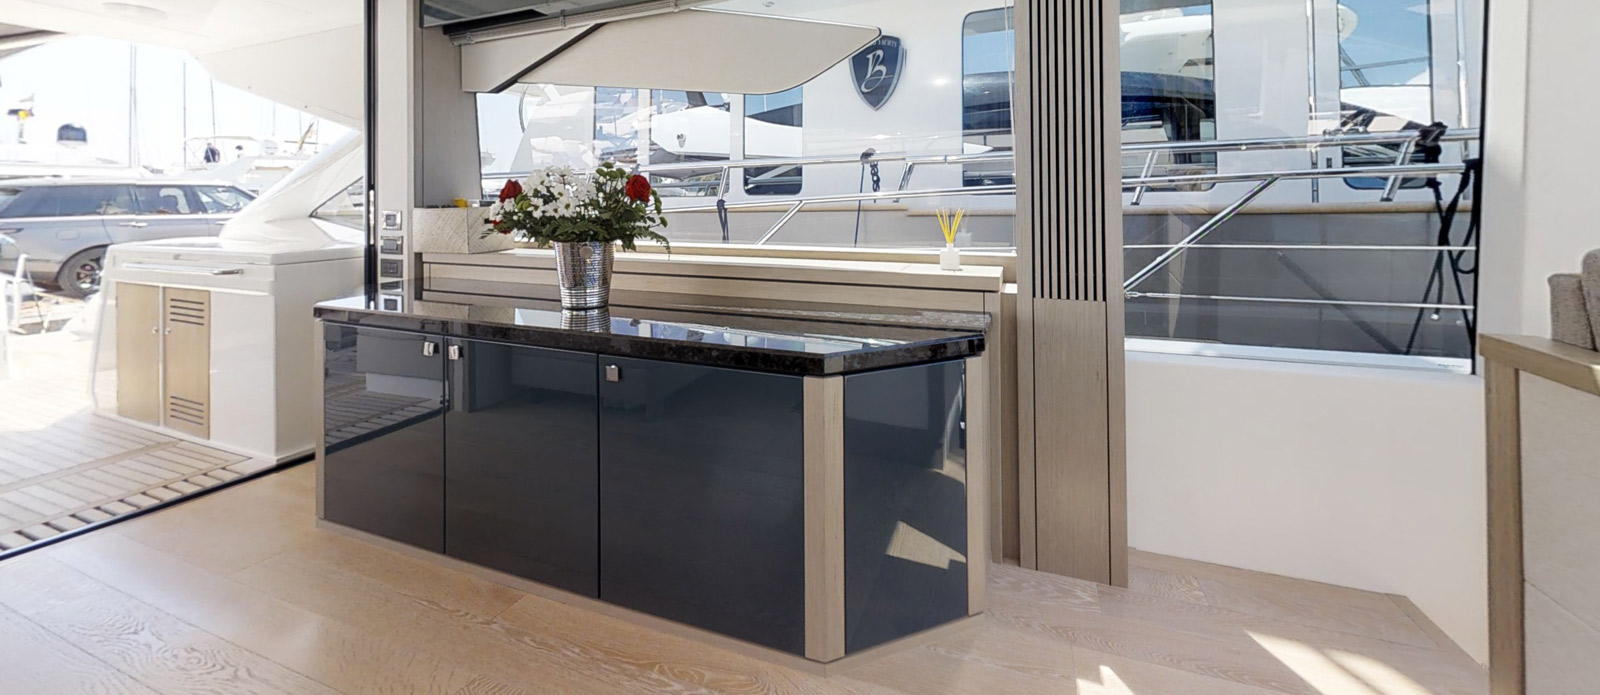 Sunseeker 74 Predator - Saloon-TV-Cabinet